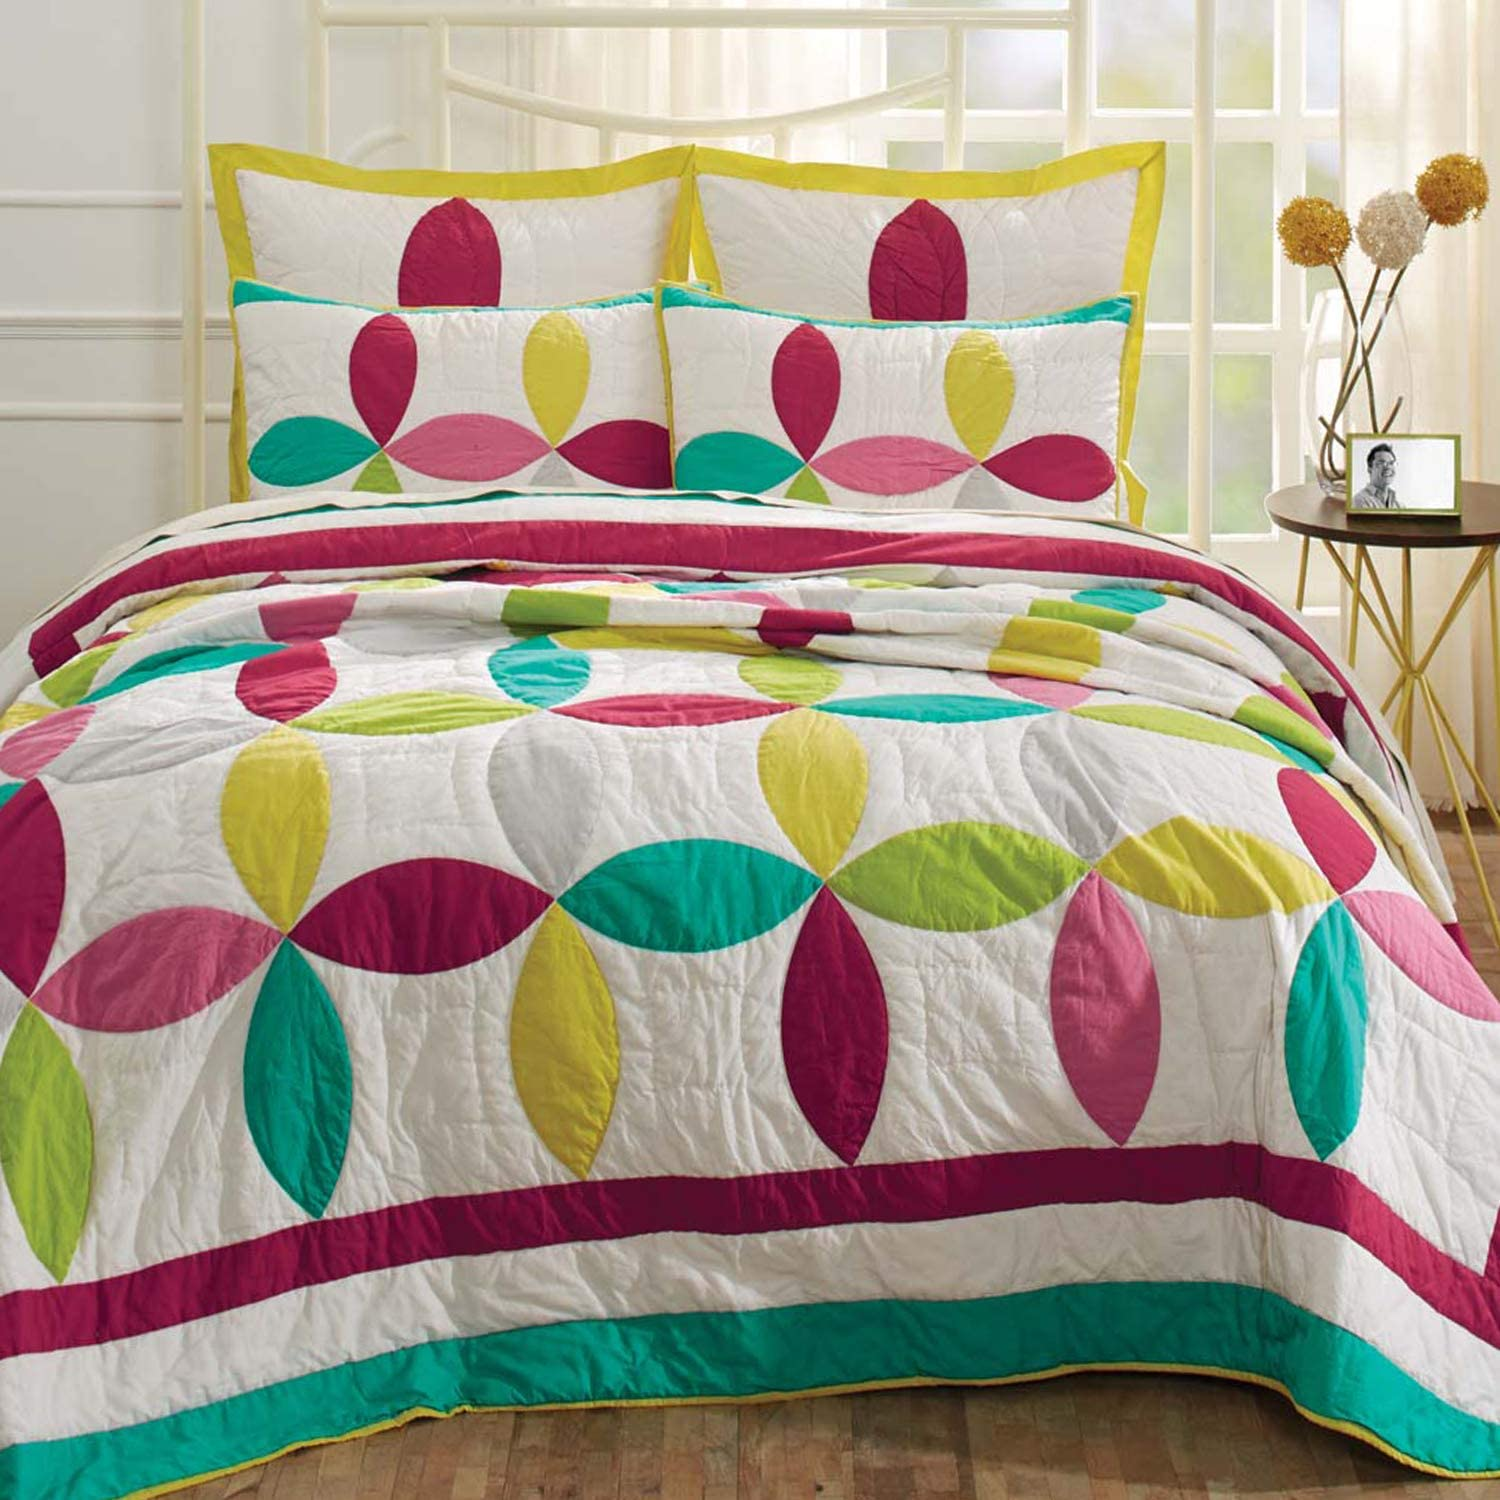 VHC Brands Everly Geometric Cotton Bedding Bohemian P Max 83% OFF favorite Pre-Washed